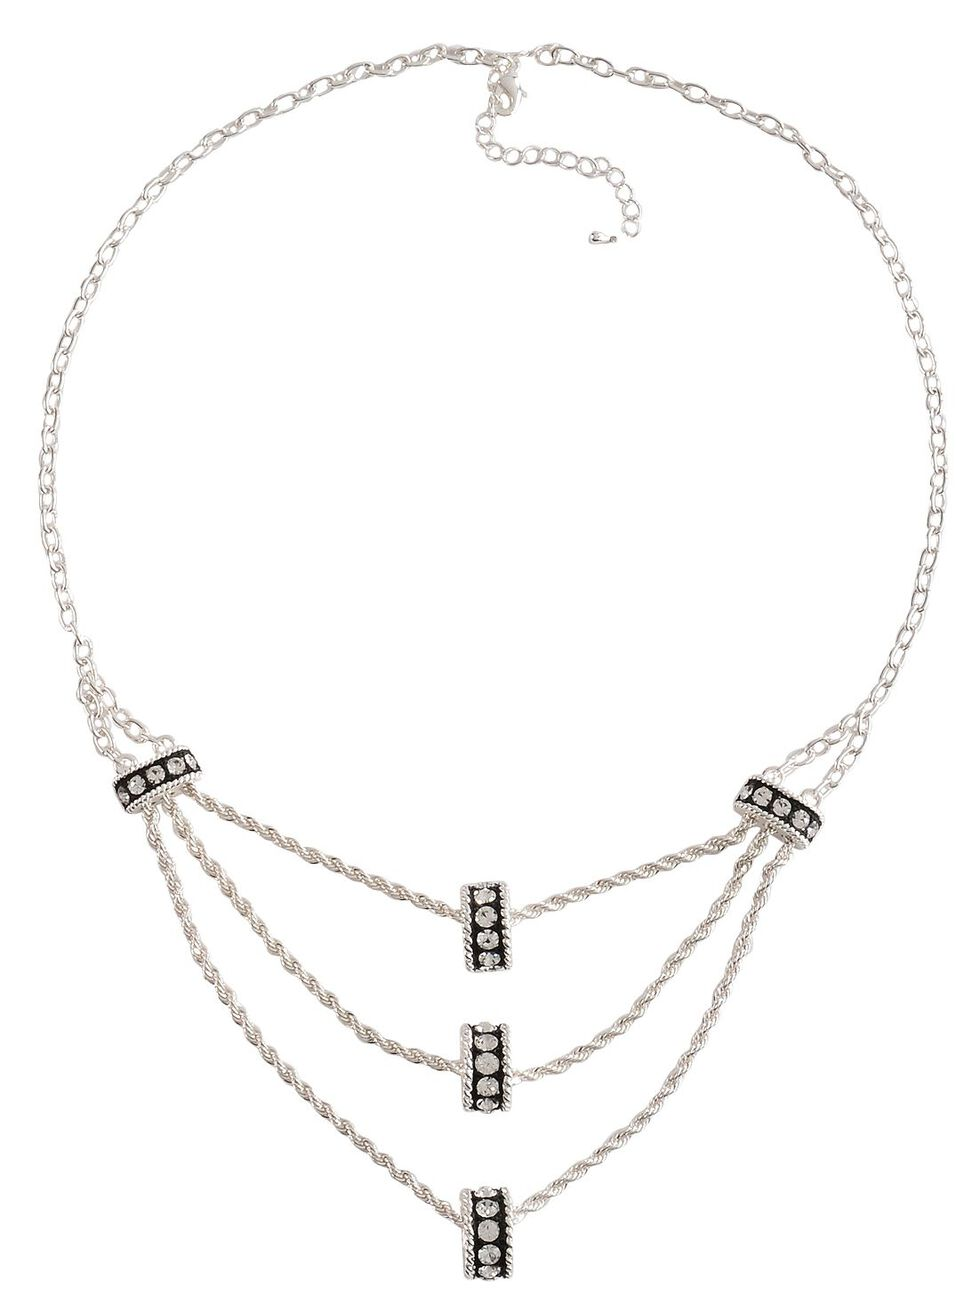 Montana Silversmiths Crystal Ring Tiered Chain Necklace, Silver, hi-res